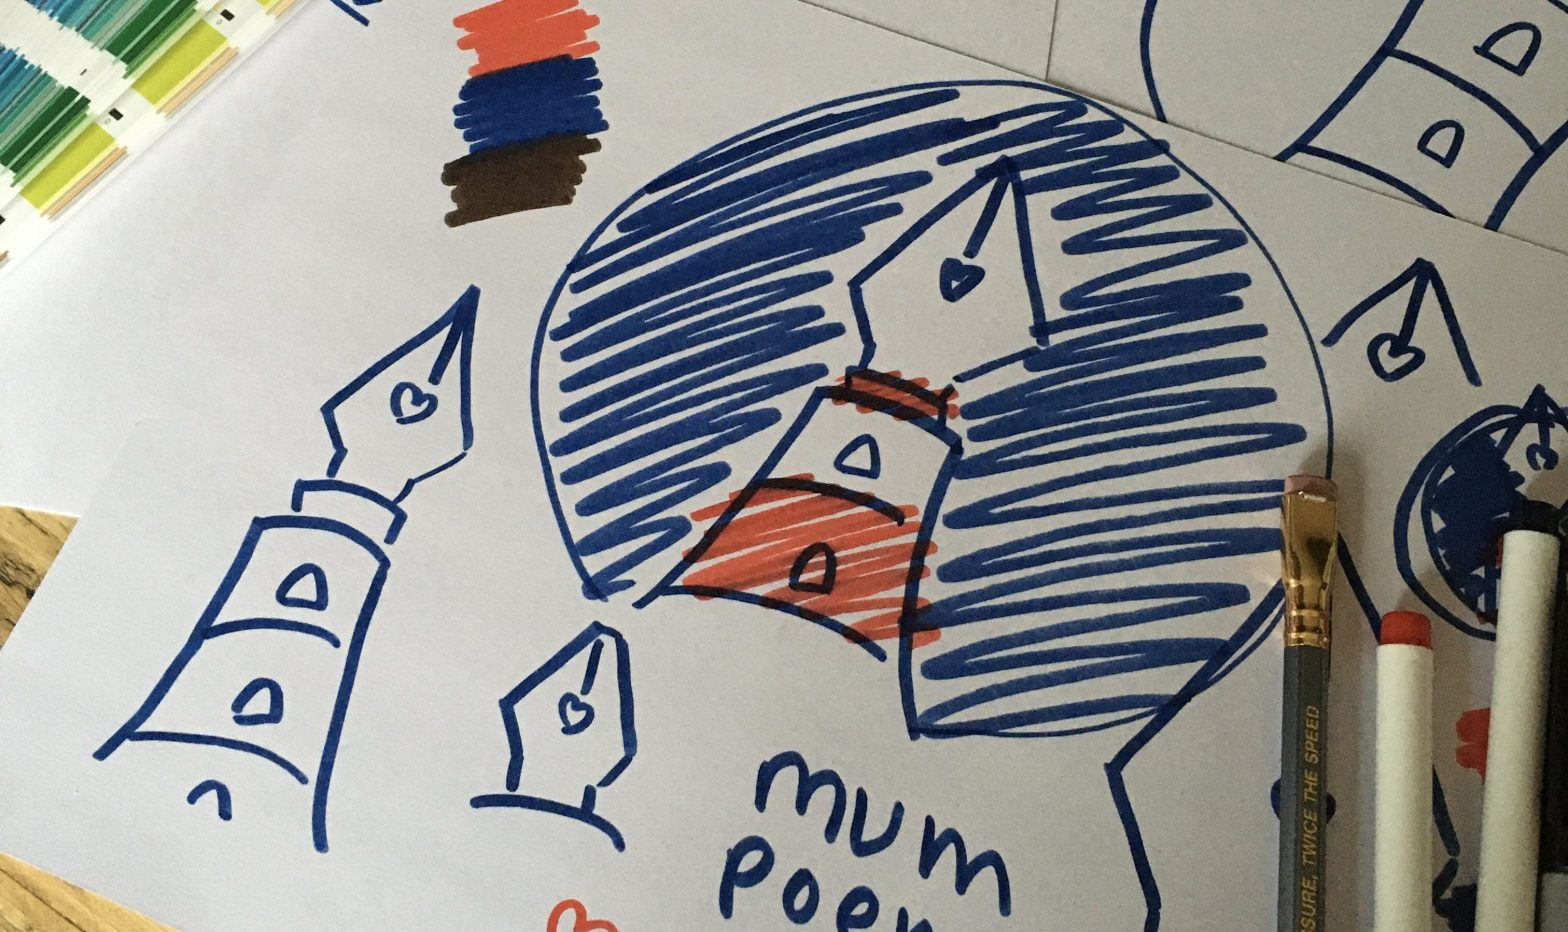 Mum Poem Press sketches